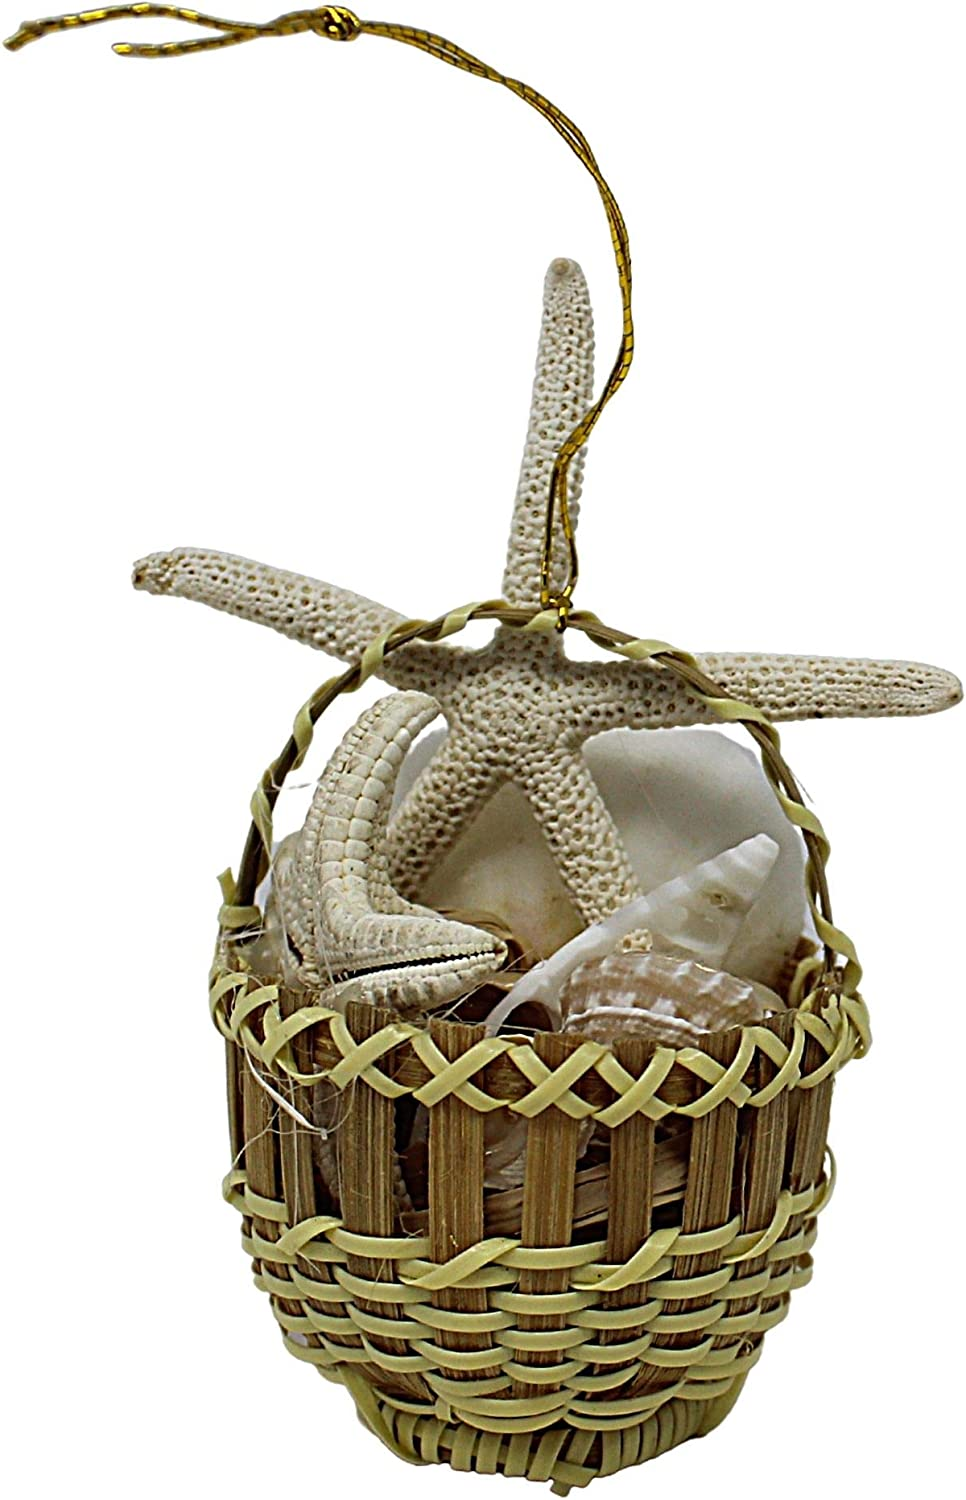 Nautical Theme Home Decor, Mini Woven Basket Filled with Seashells, Beachy Decoration for Beach House, 4.5 Inches